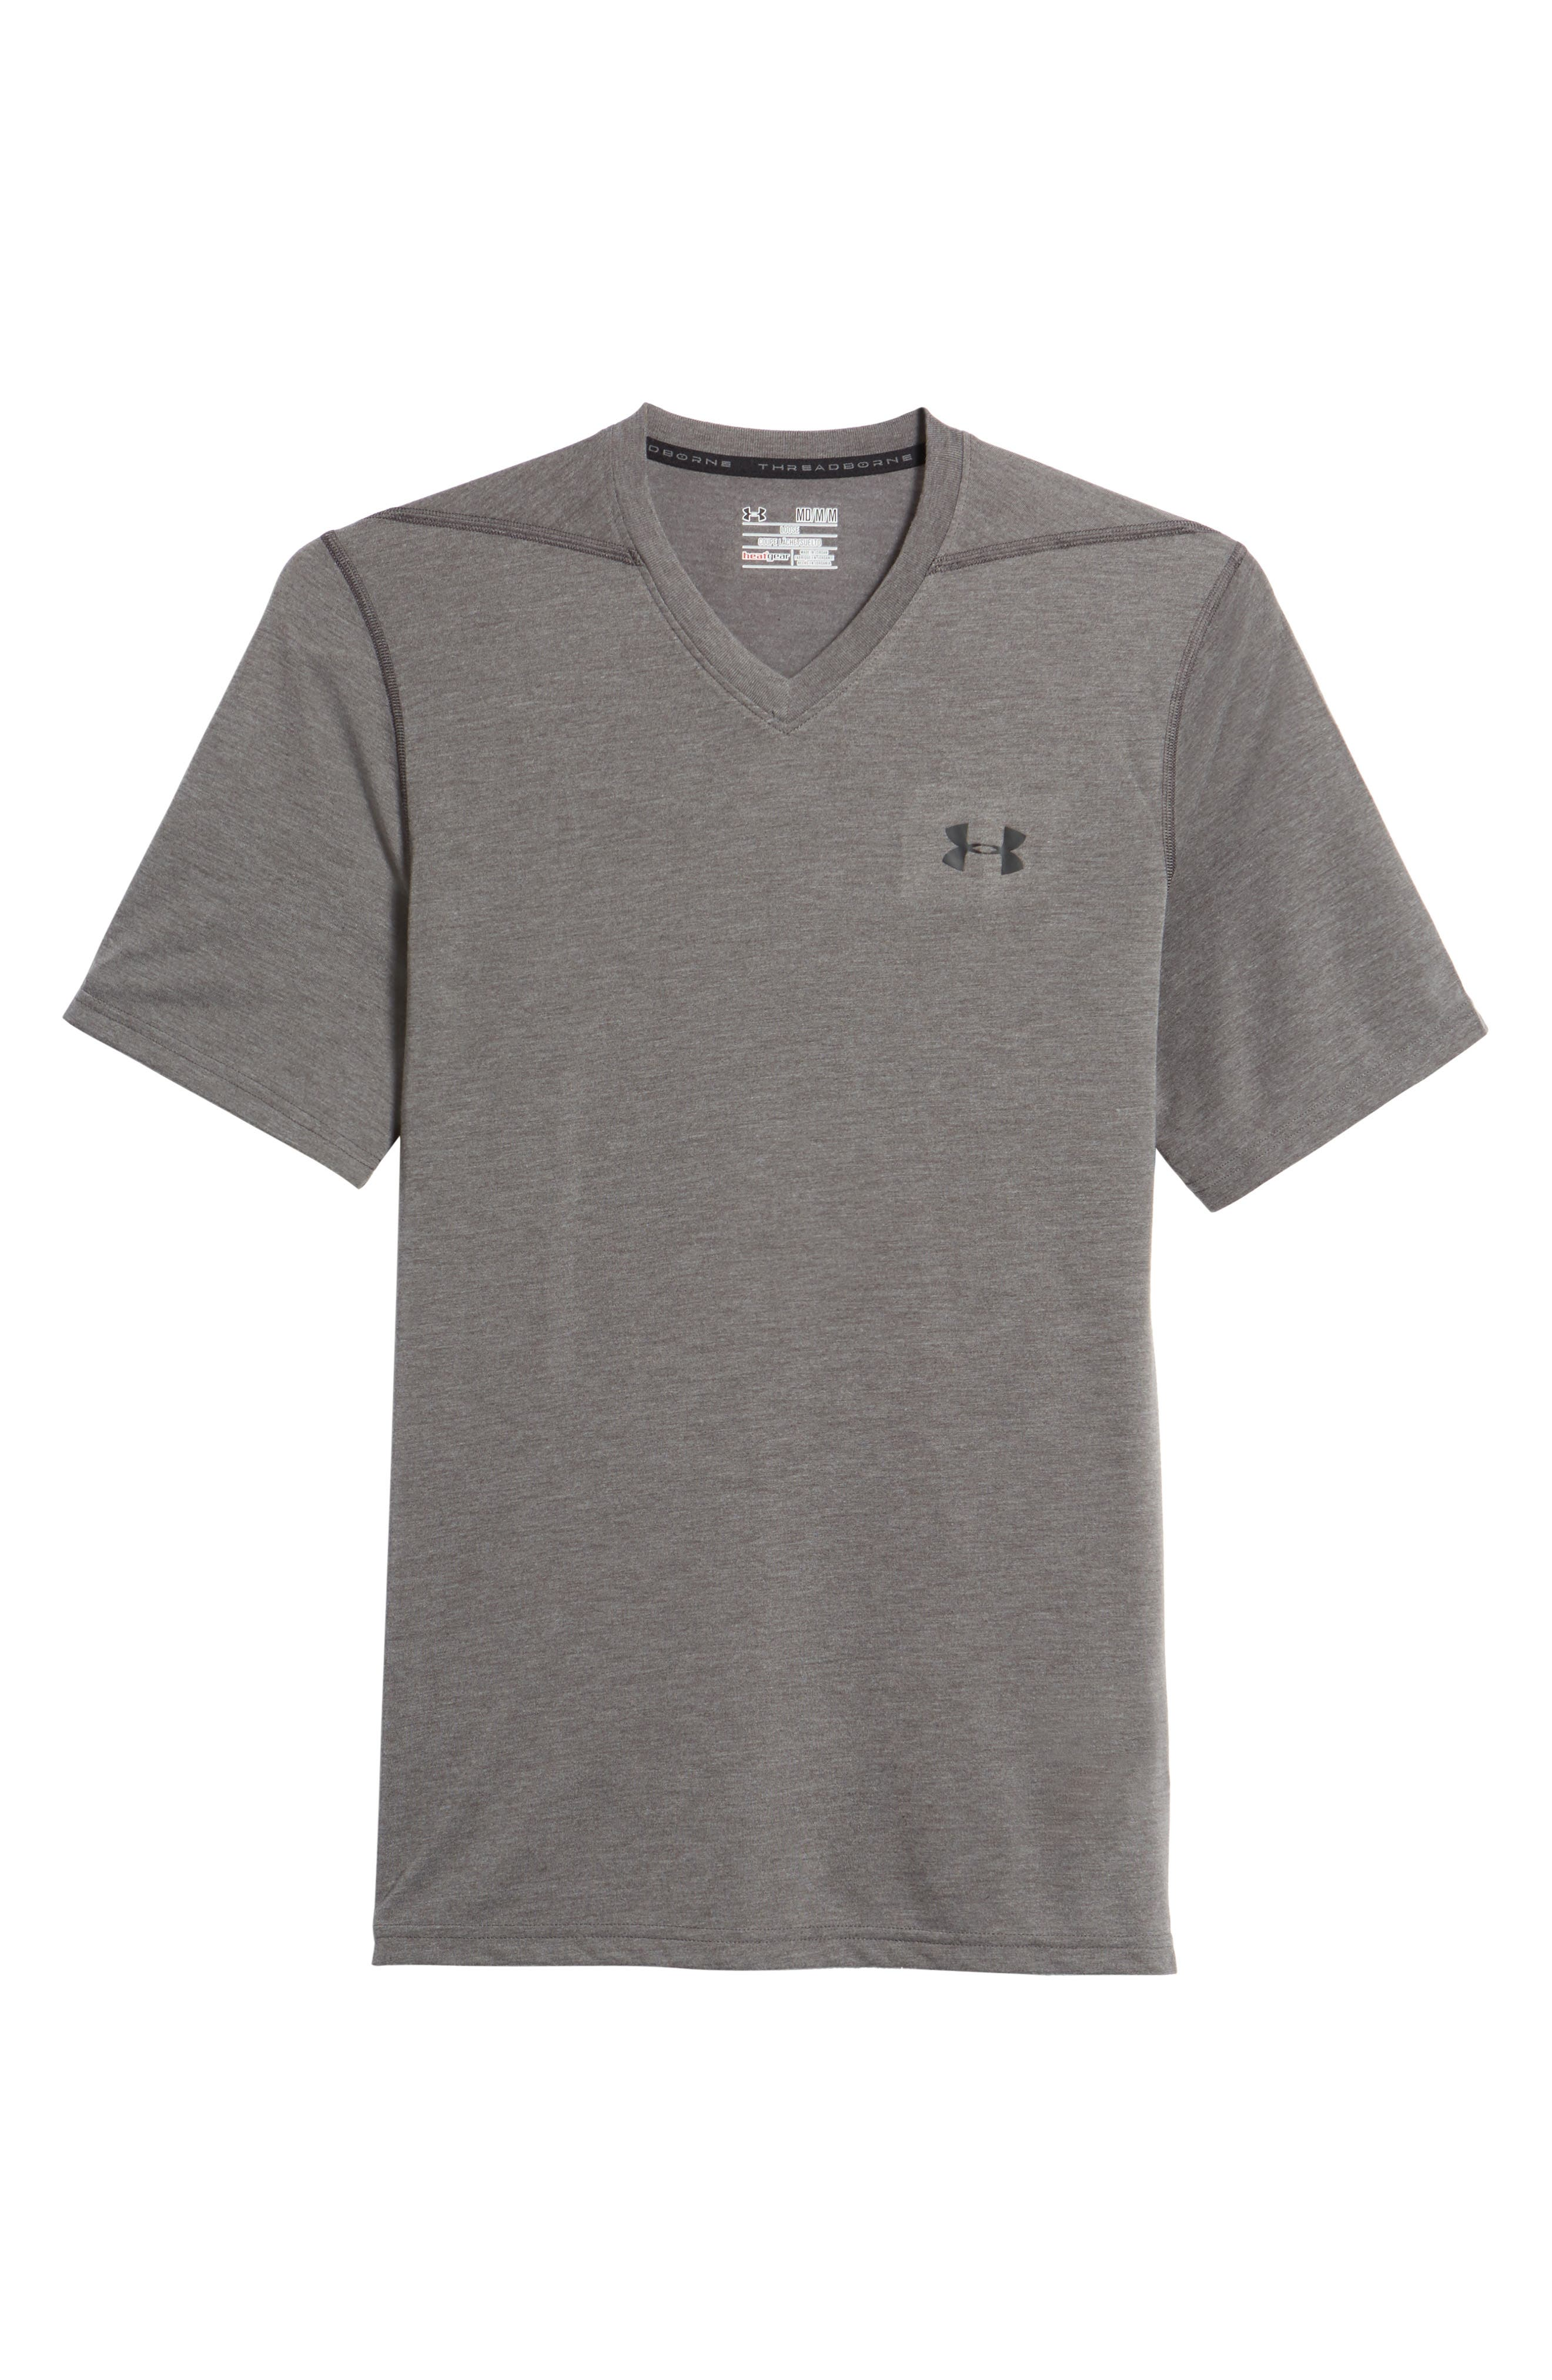 Regular Fit Threadborne T-Shirt,                         Main,                         color, Carbon Heather